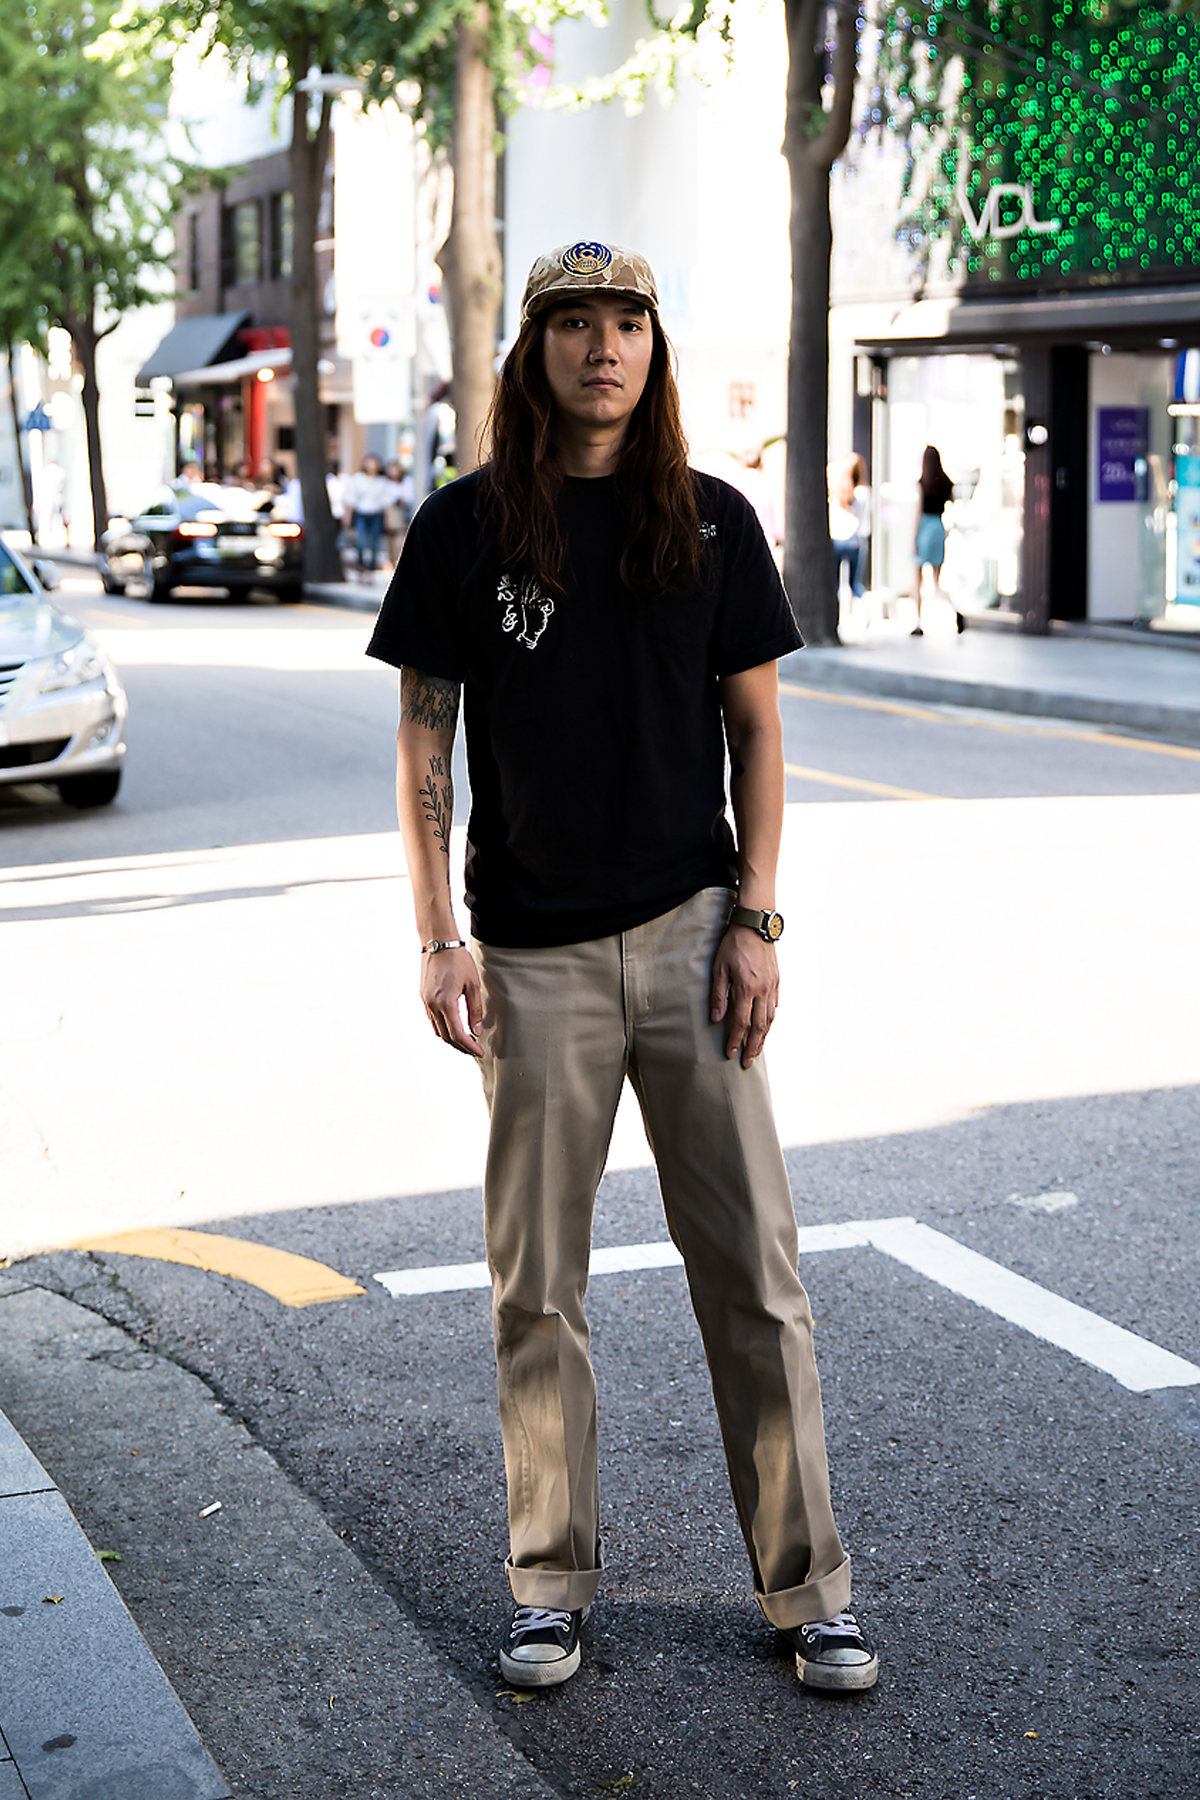 Kim Soobok, Street Fashion 2017 in Seoul.jpg